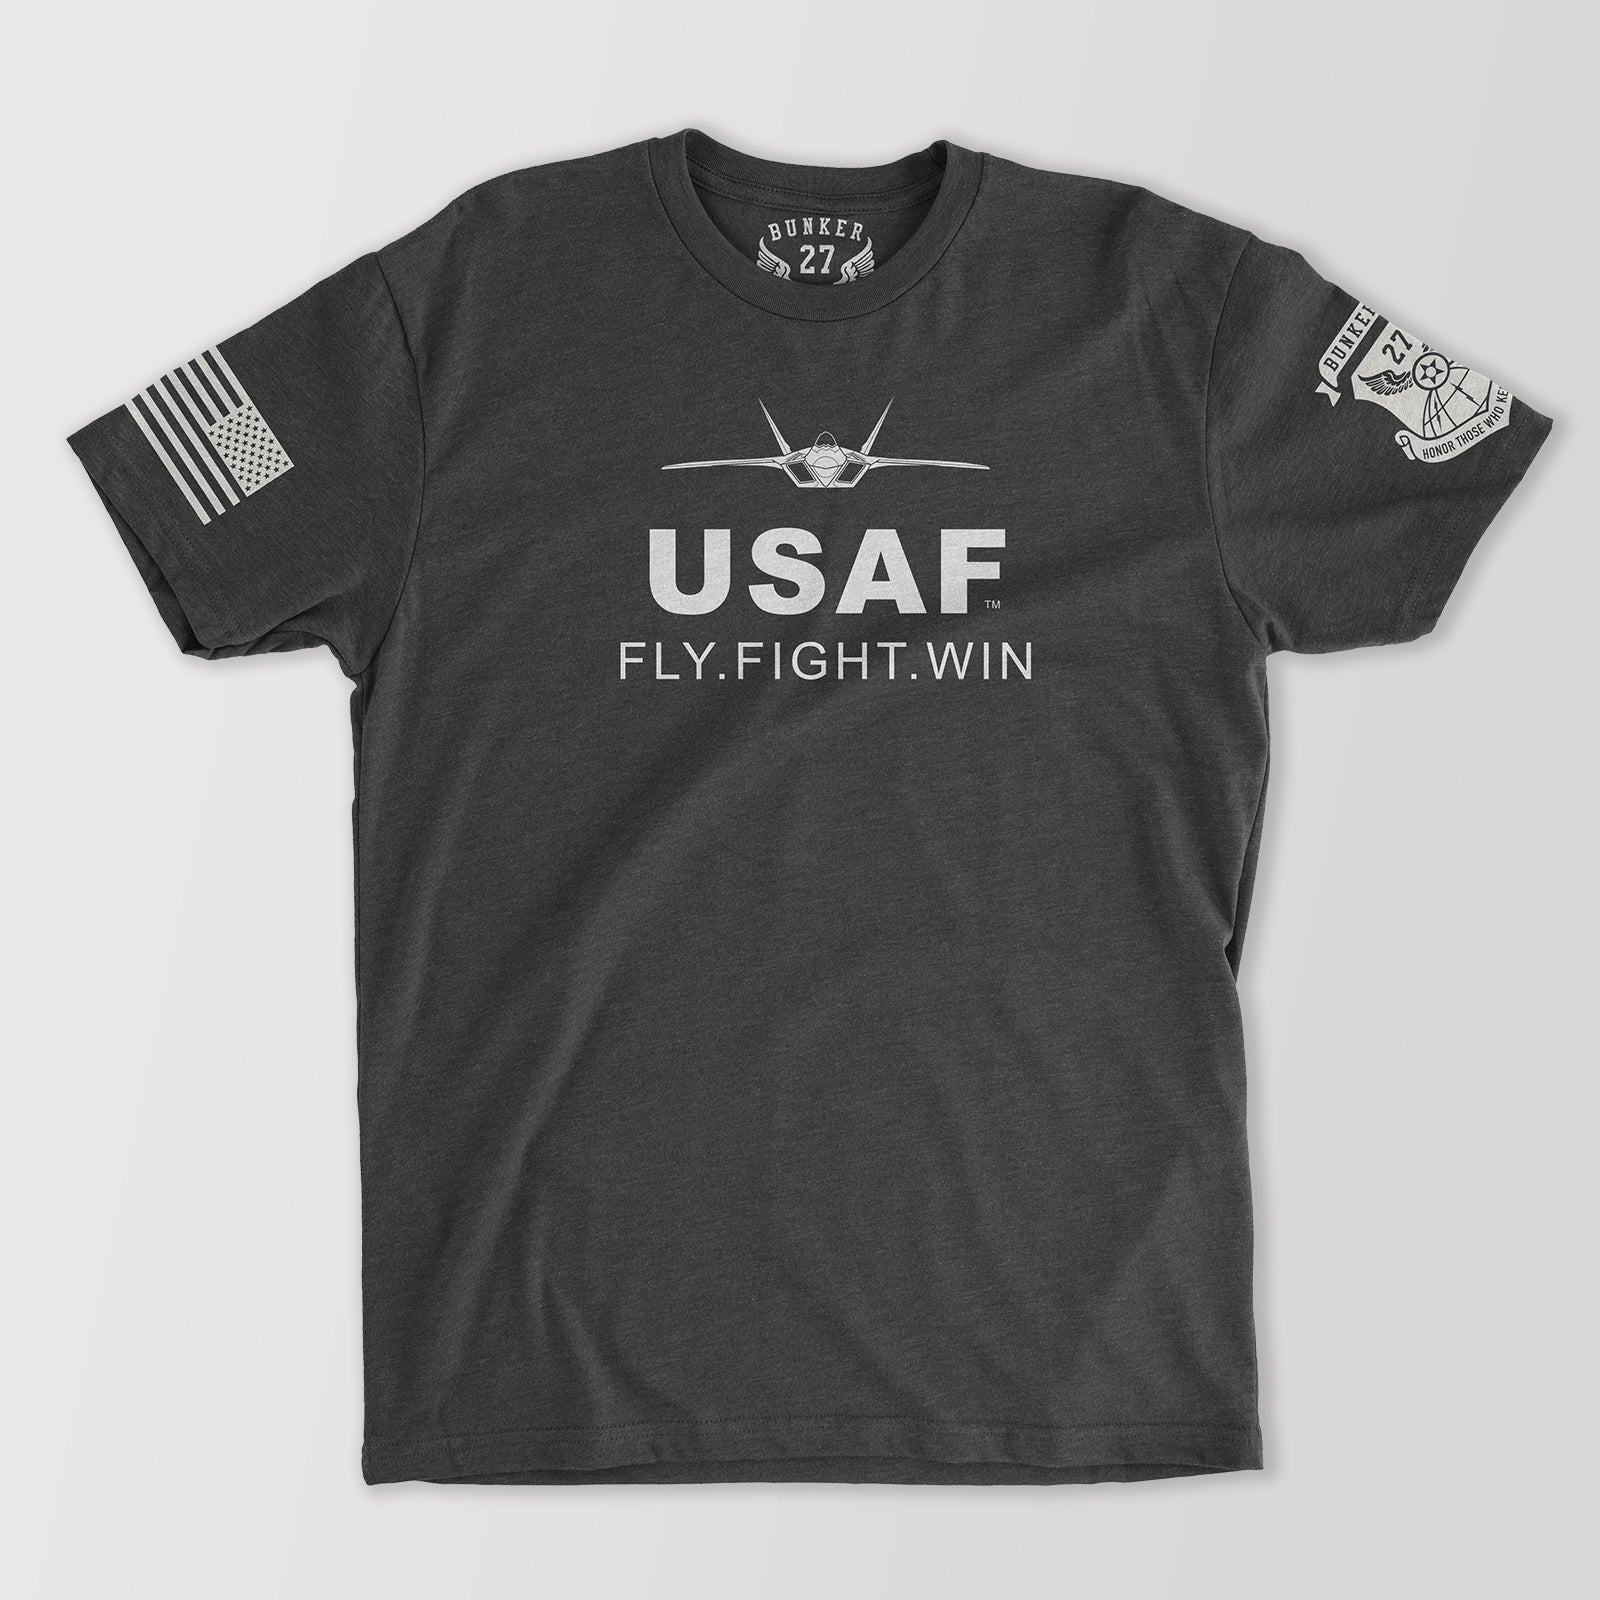 Official U.S. Air Force Fly Fight Win T-Shirt, Bunker 27